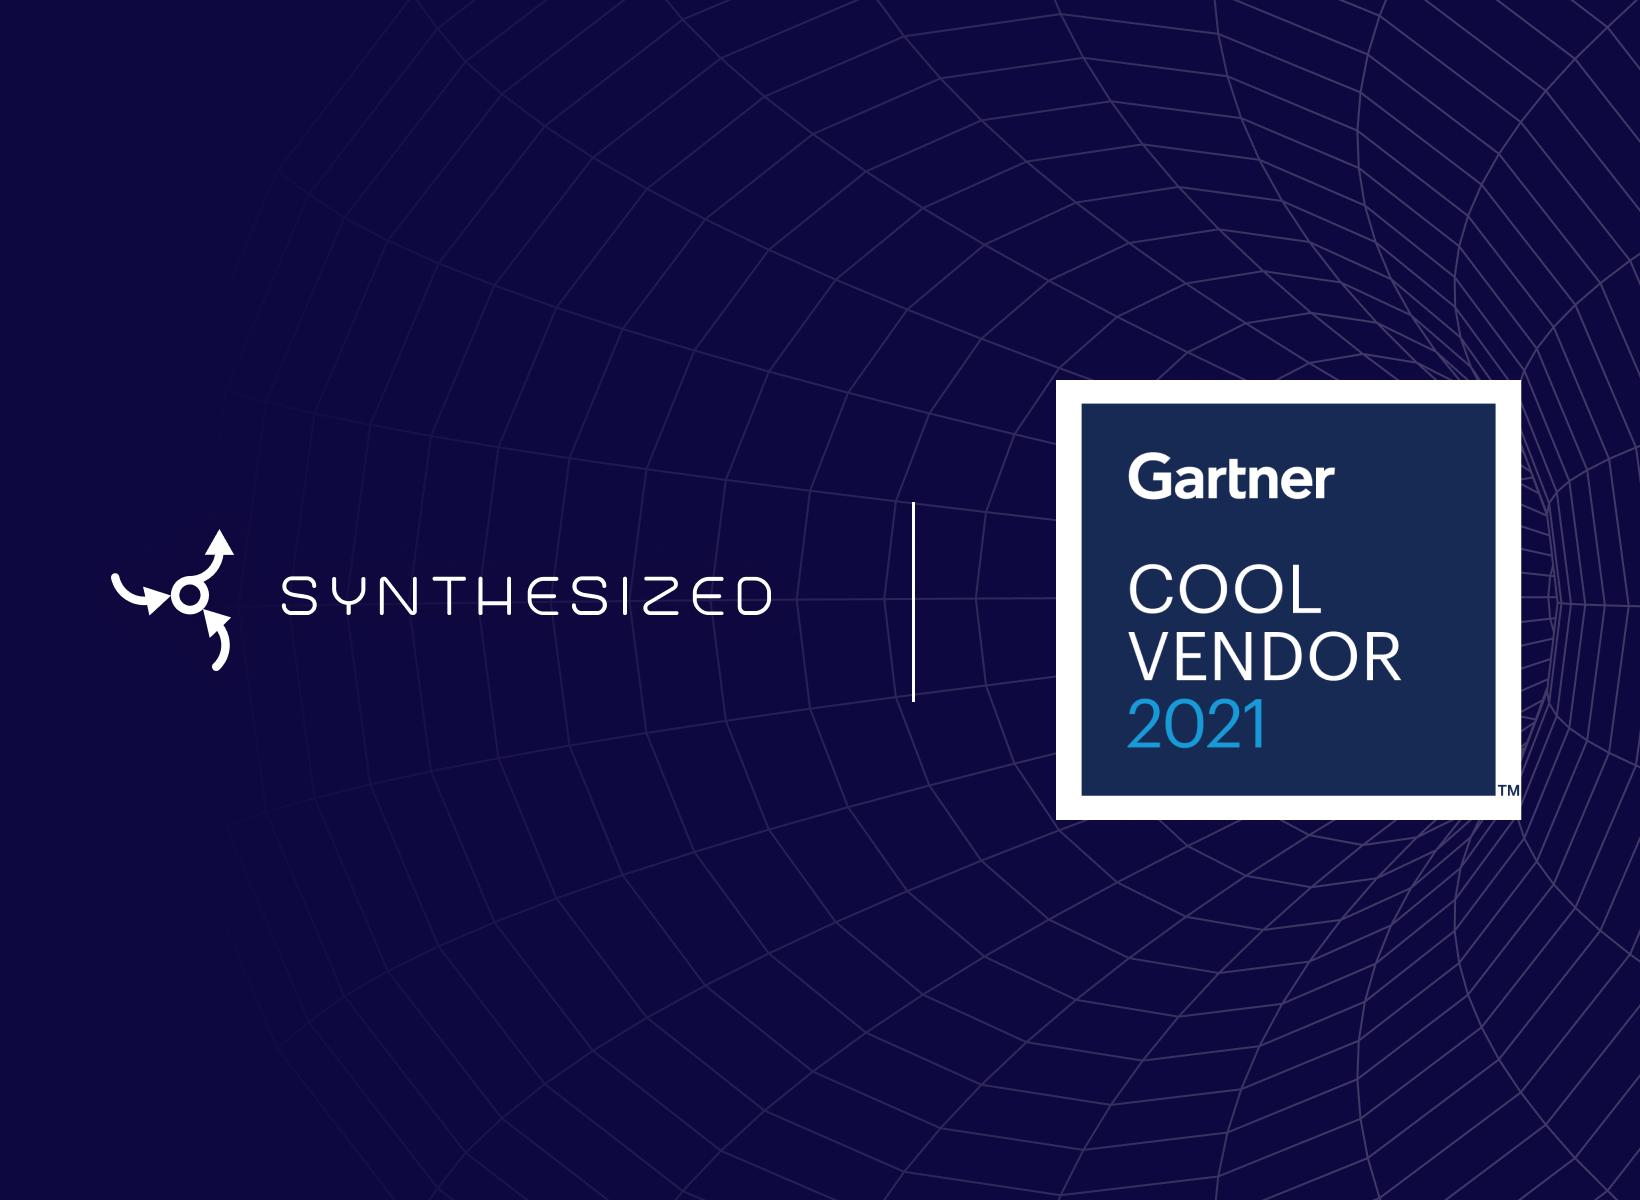 """Synthesized – a """"Cool"""" Business Identifying Unfair Data, According to Gartner"""